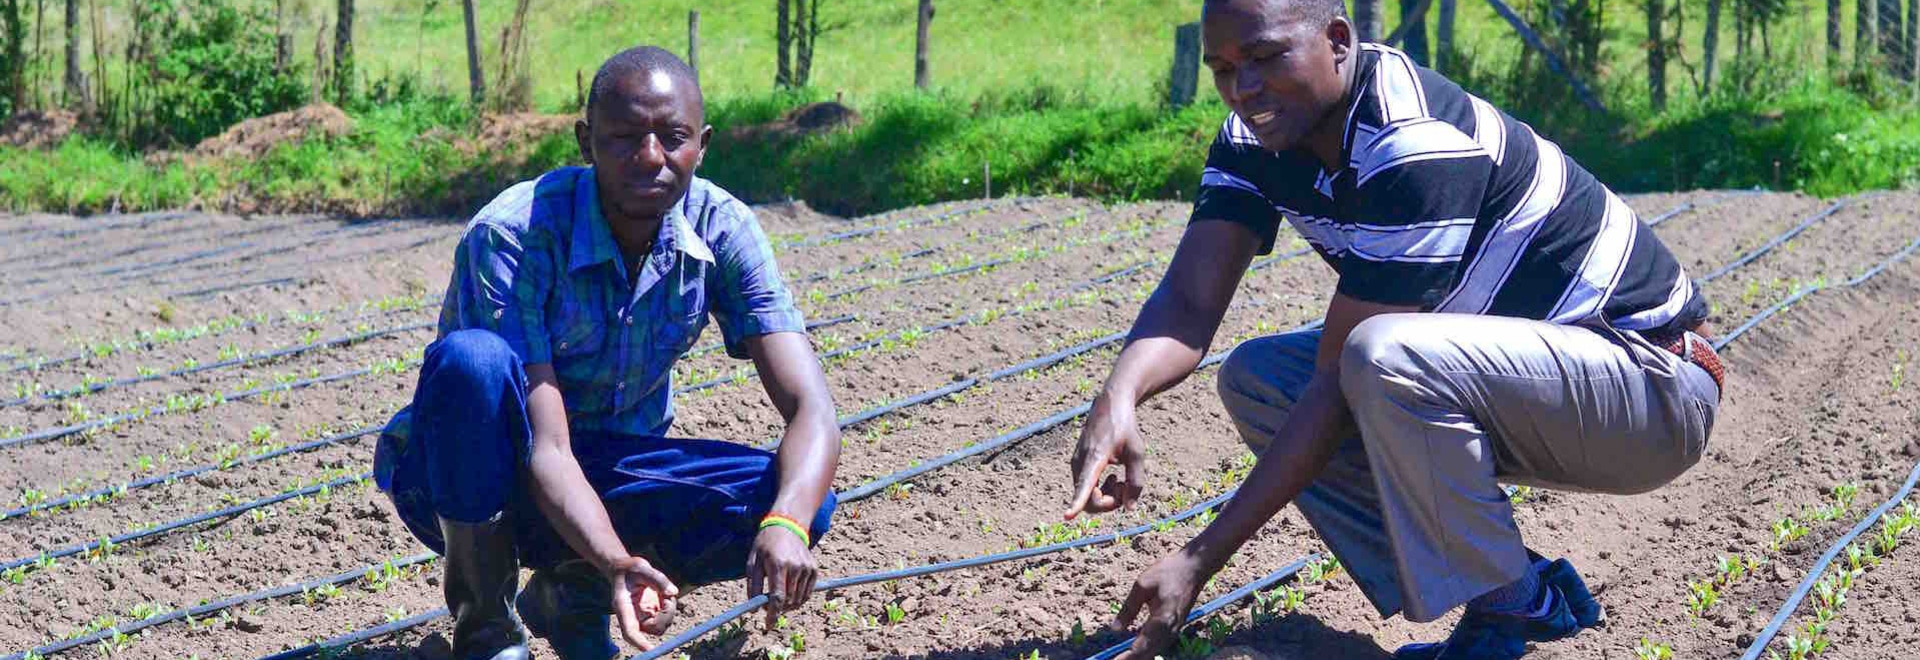 Young farmers in Zambia turning to digital technologies